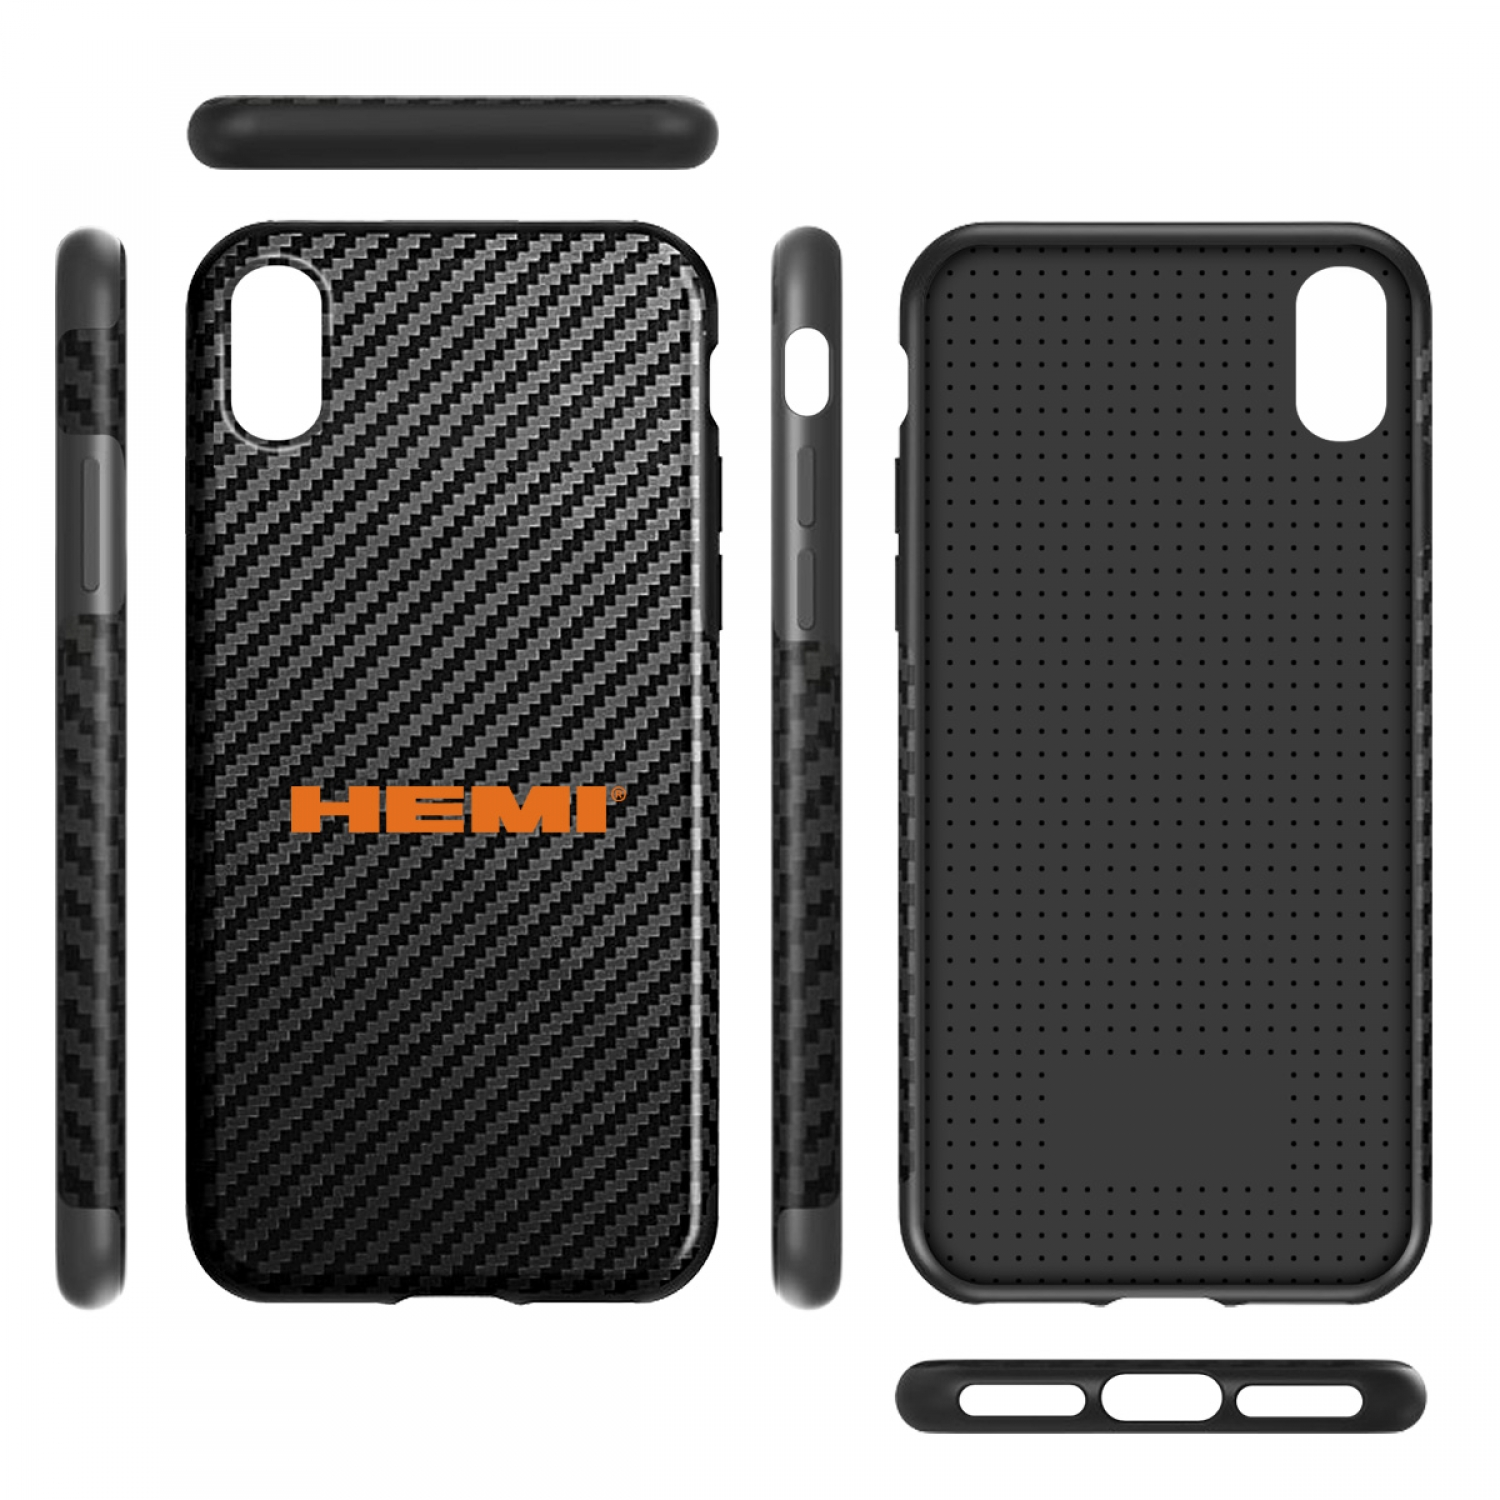 HEMI Logo iPhone X Black Carbon Fiber Texture Leather TPU Shockproof Cell Phone Case